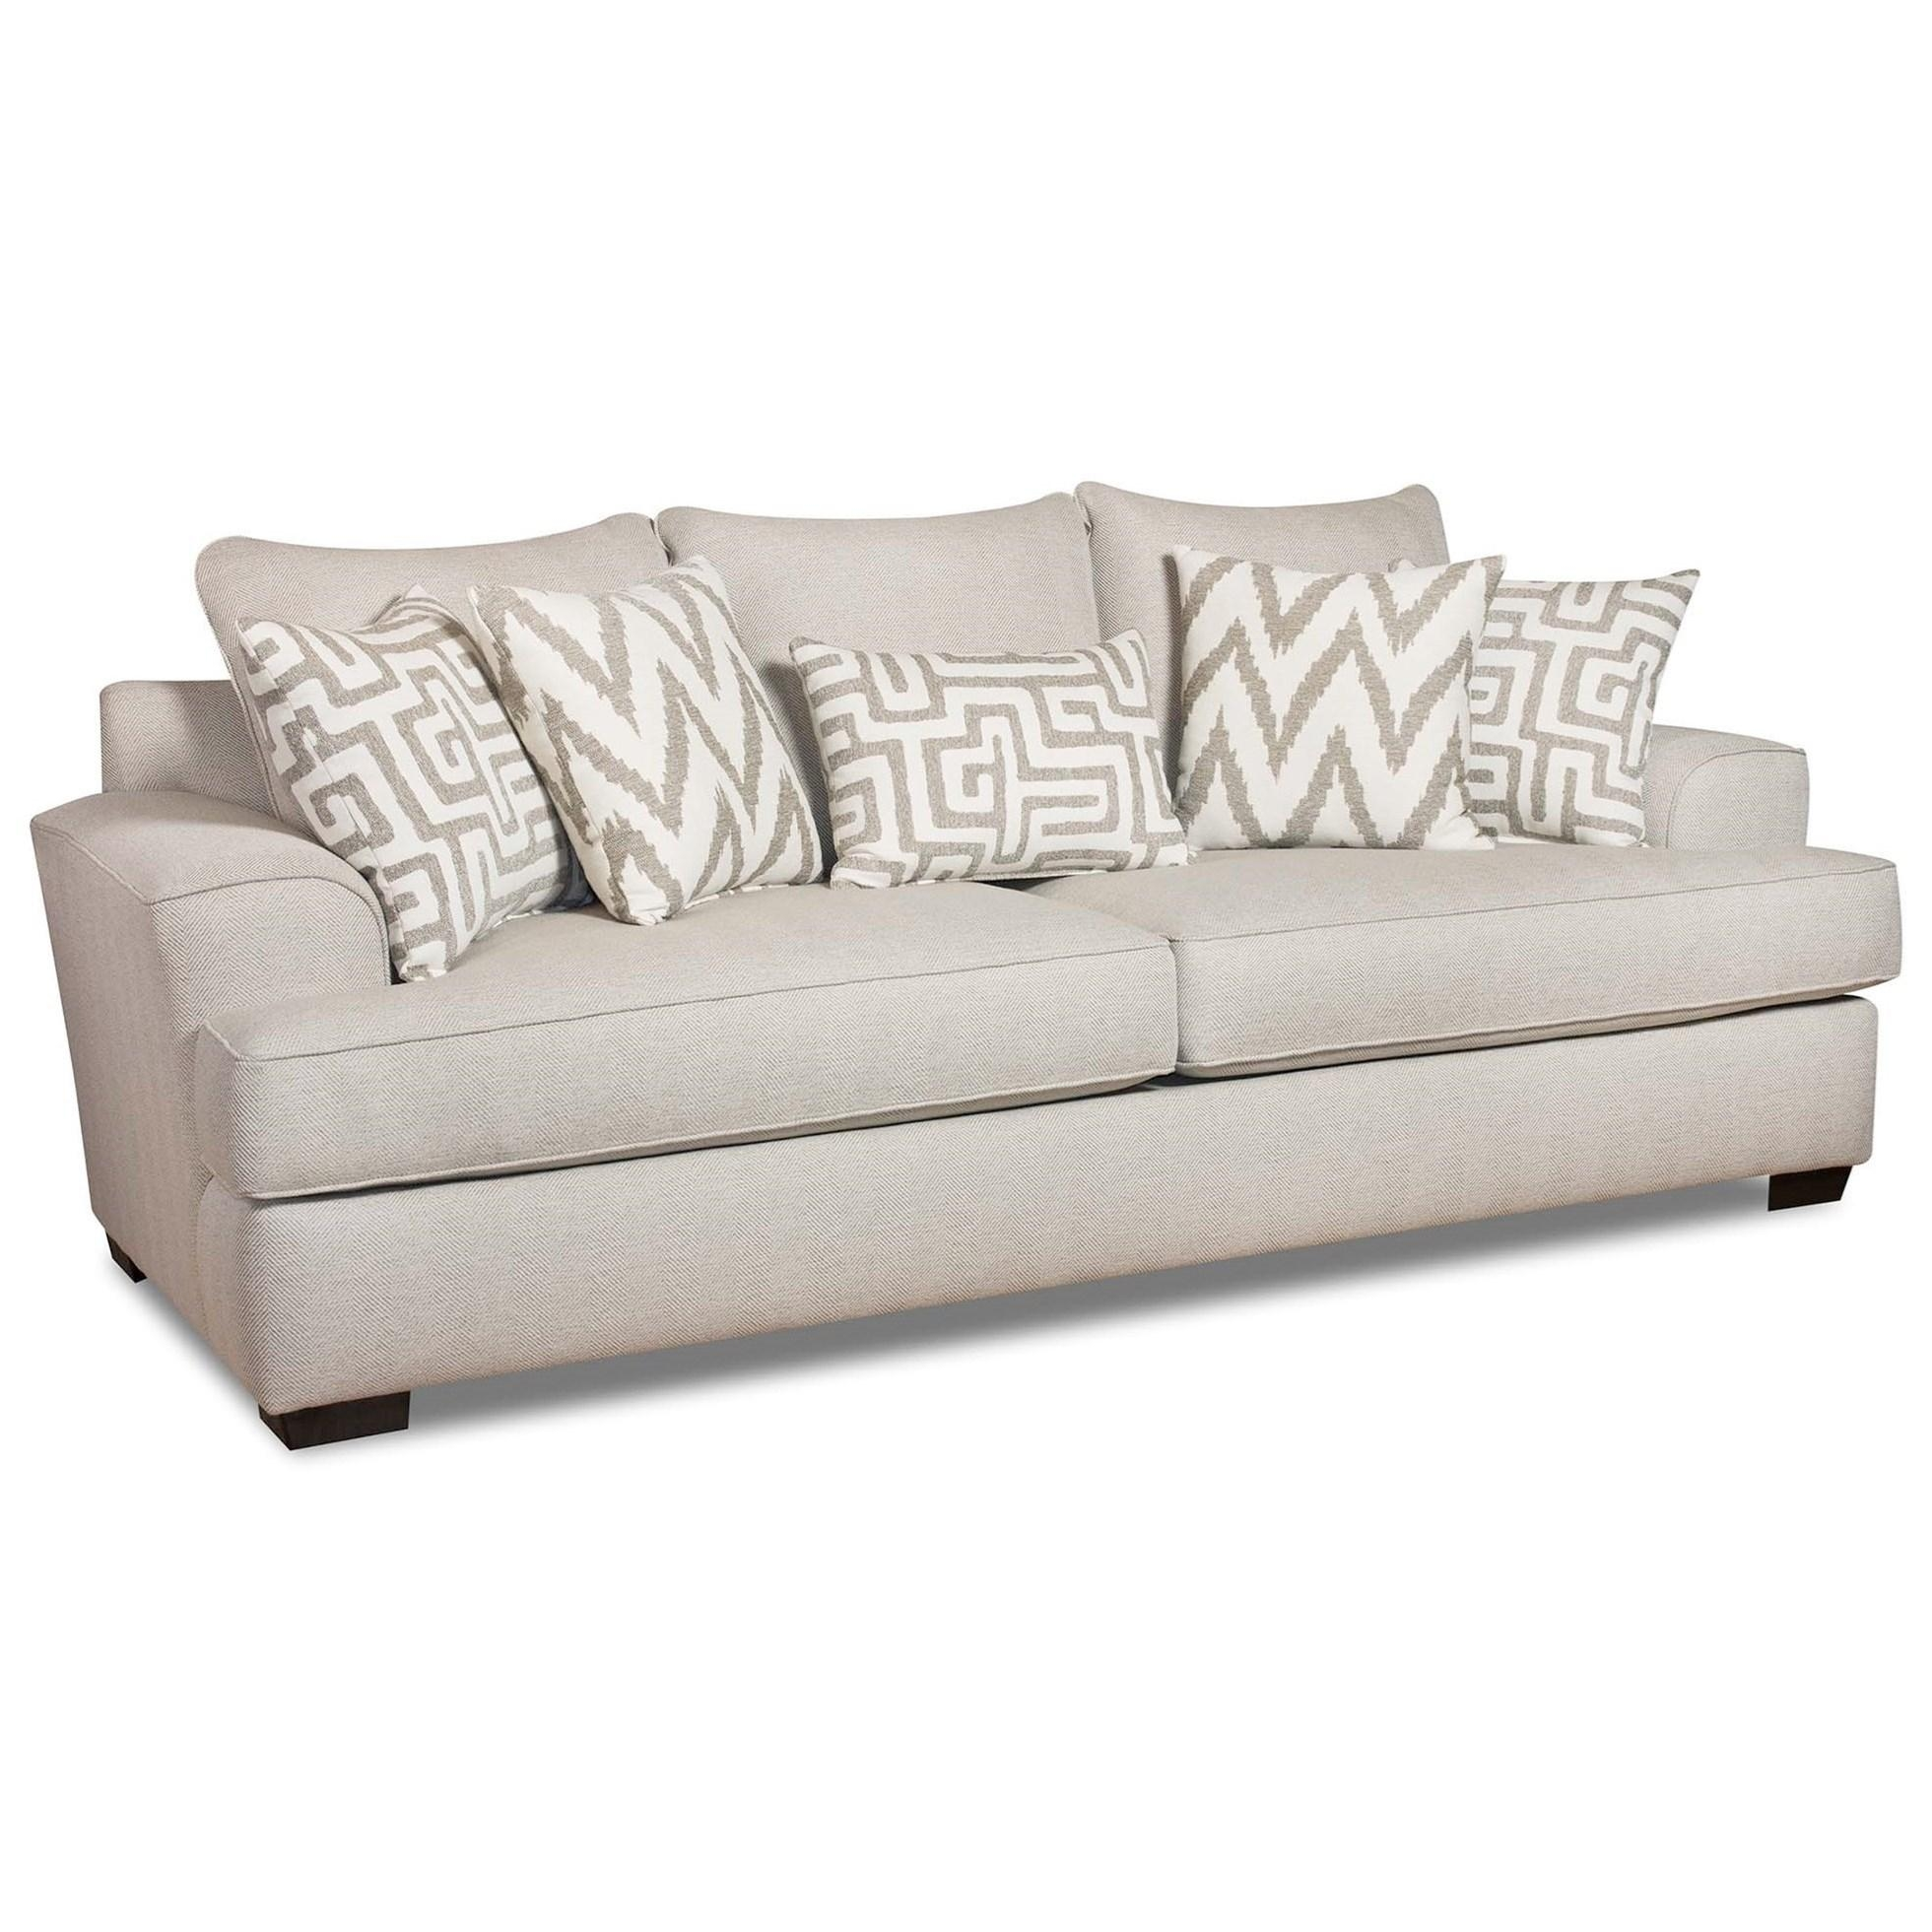 Corinthian Colonist Sofa – Great American Home Store – Sofas Pertaining To Corinthian Sofas (View 10 of 20)